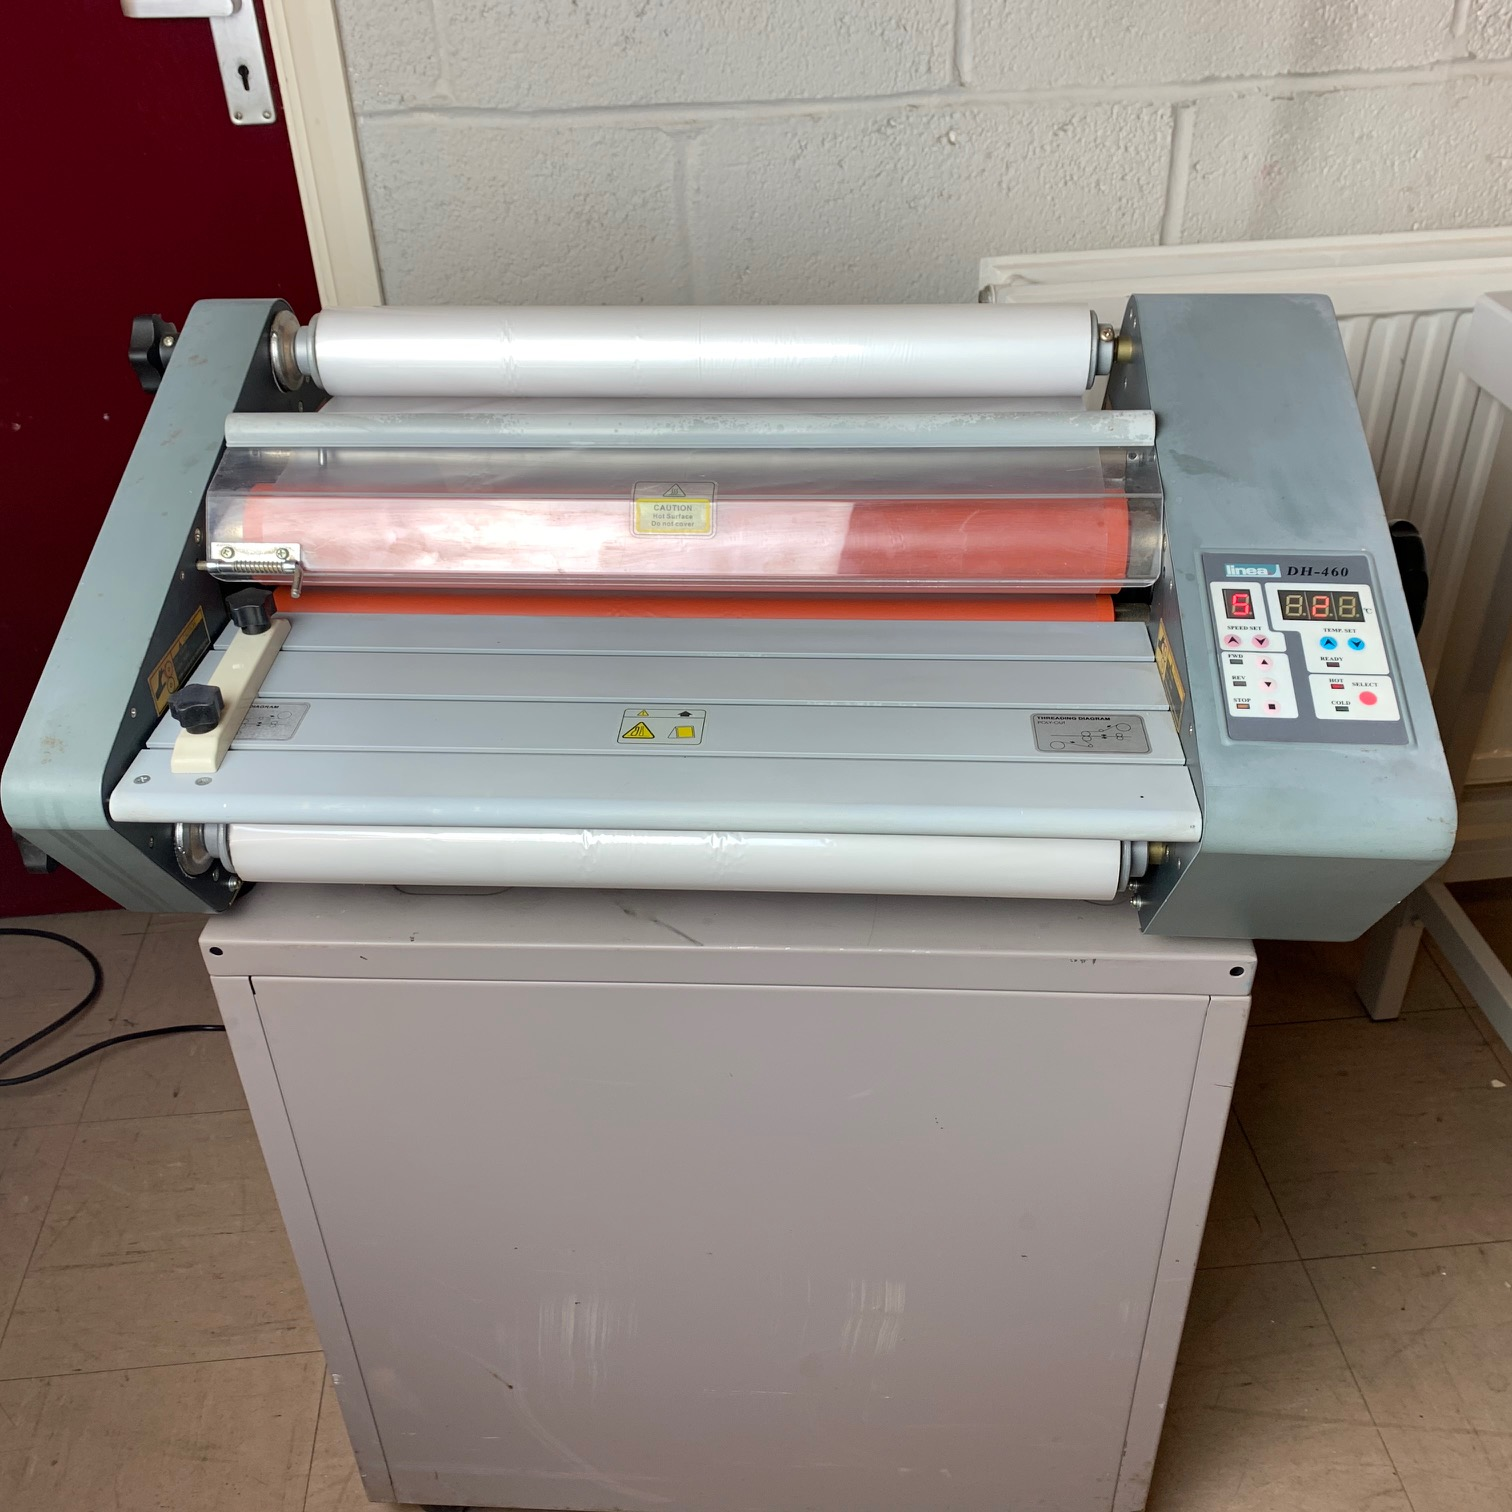 Pre-owned Linea DH-460 Roll-Fed A2 Hot Laminator